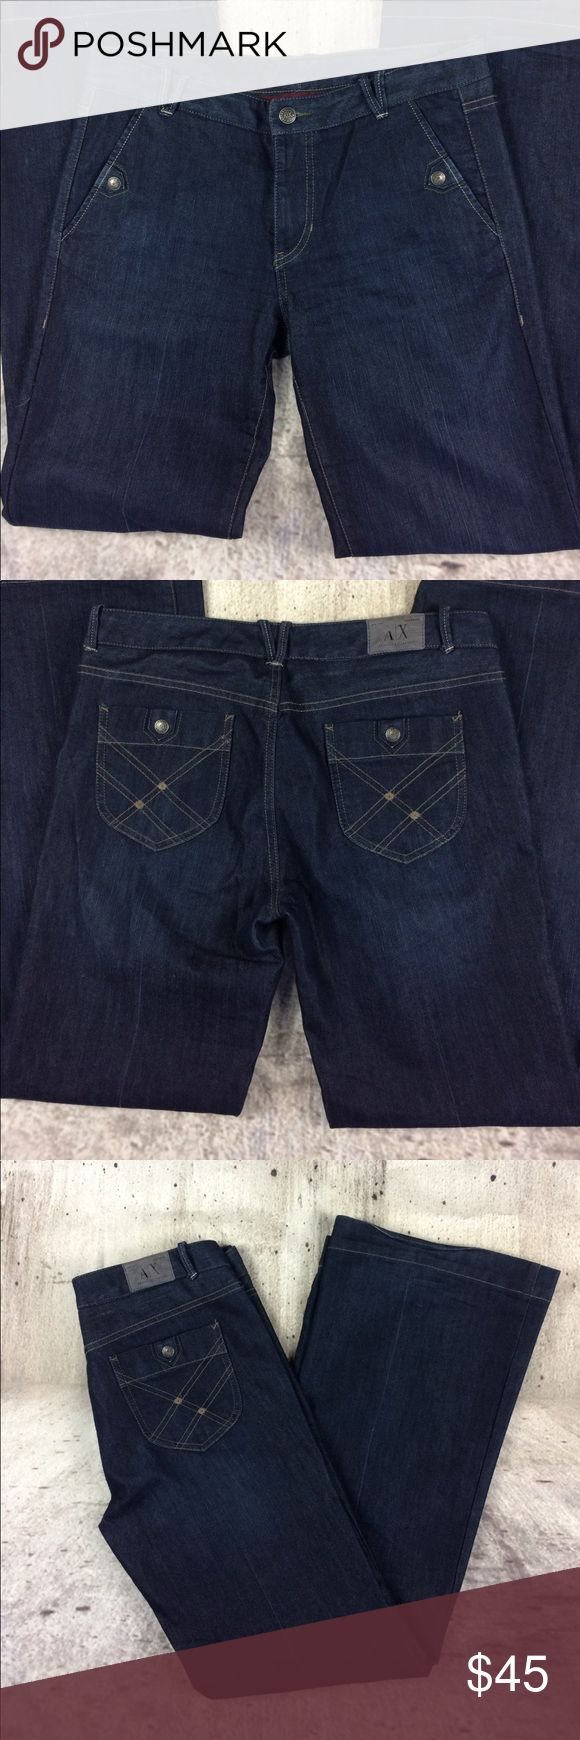 """Armani Exchange trouser jeans Armani Exchange trouser jeans cotton and polyester blend inseam 33""""rise 9"""" A/X Armani Exchange Jeans Flare & Wide Leg"""